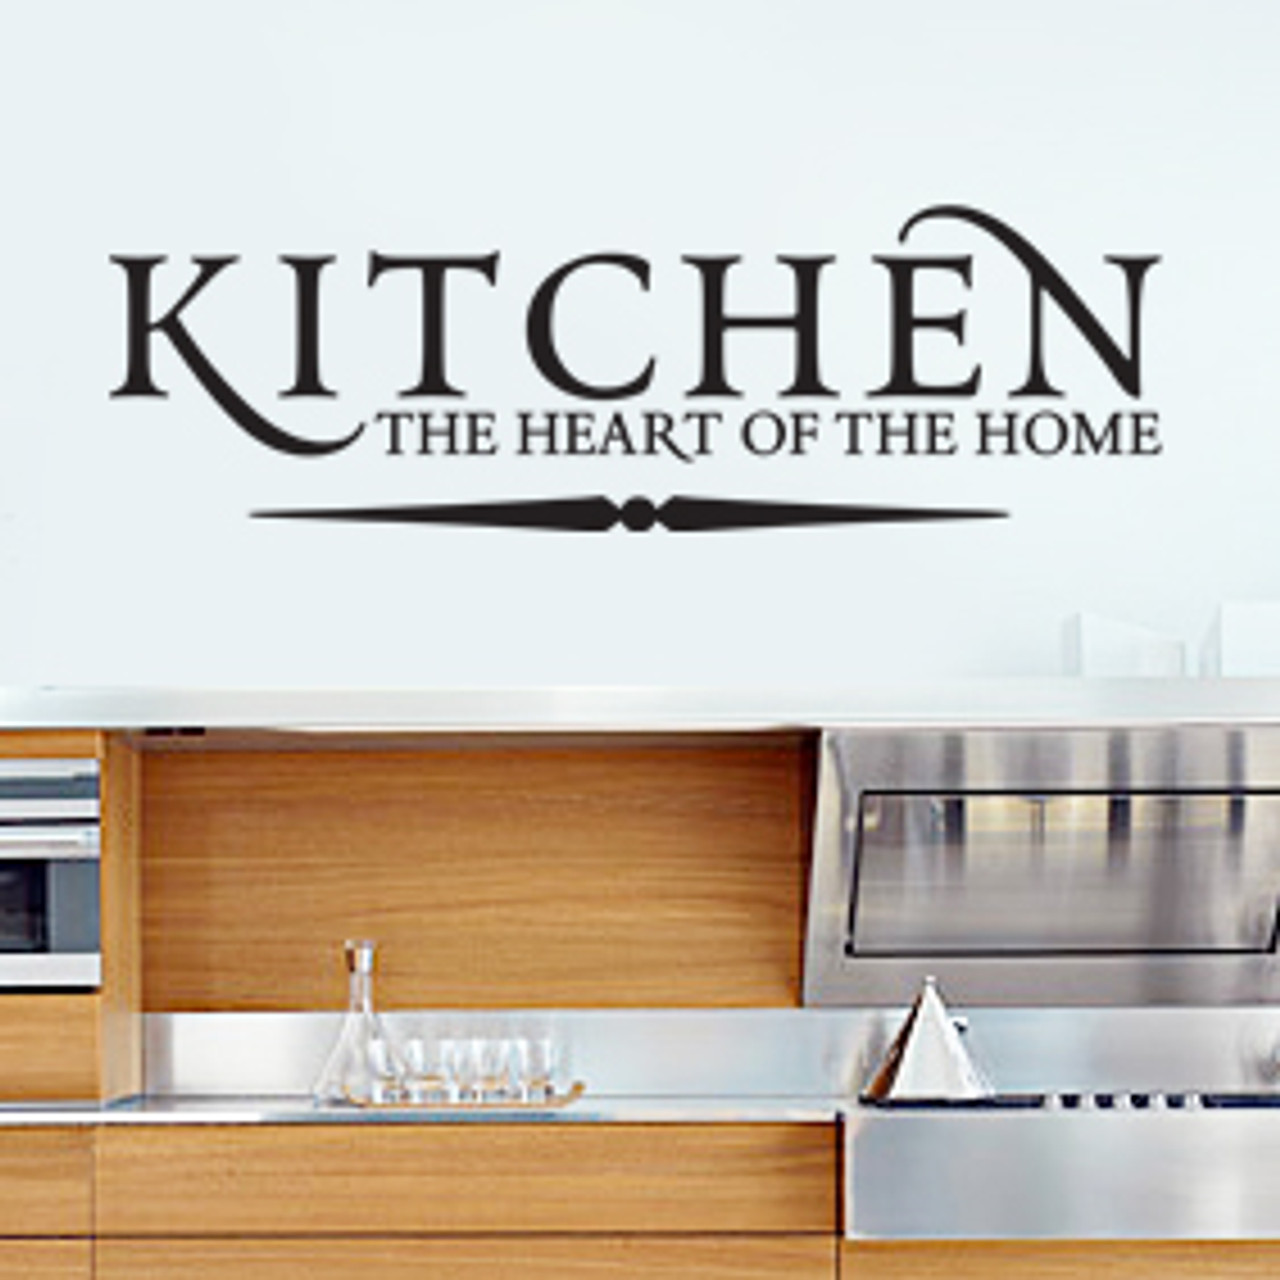 Kitchen Wall Decal Decalmywall Com